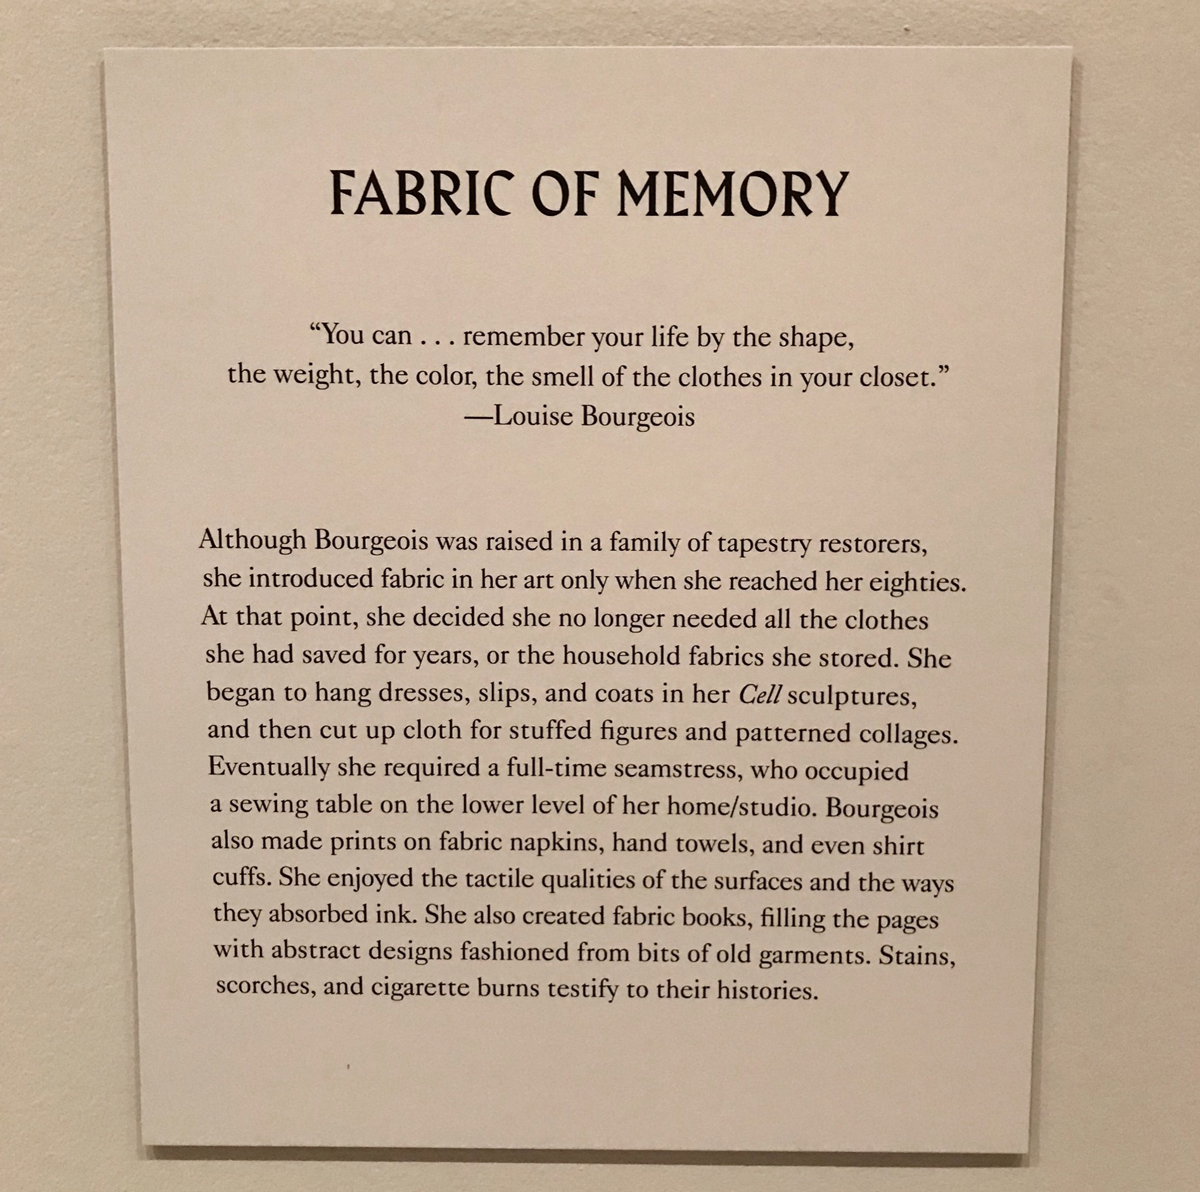 I found this quote to be a particularly poignant selection by the MoMA - connecting Bourgeois' work to the  Items: Is Fashion Modern Art exhibition running simultaneously on the floor above.